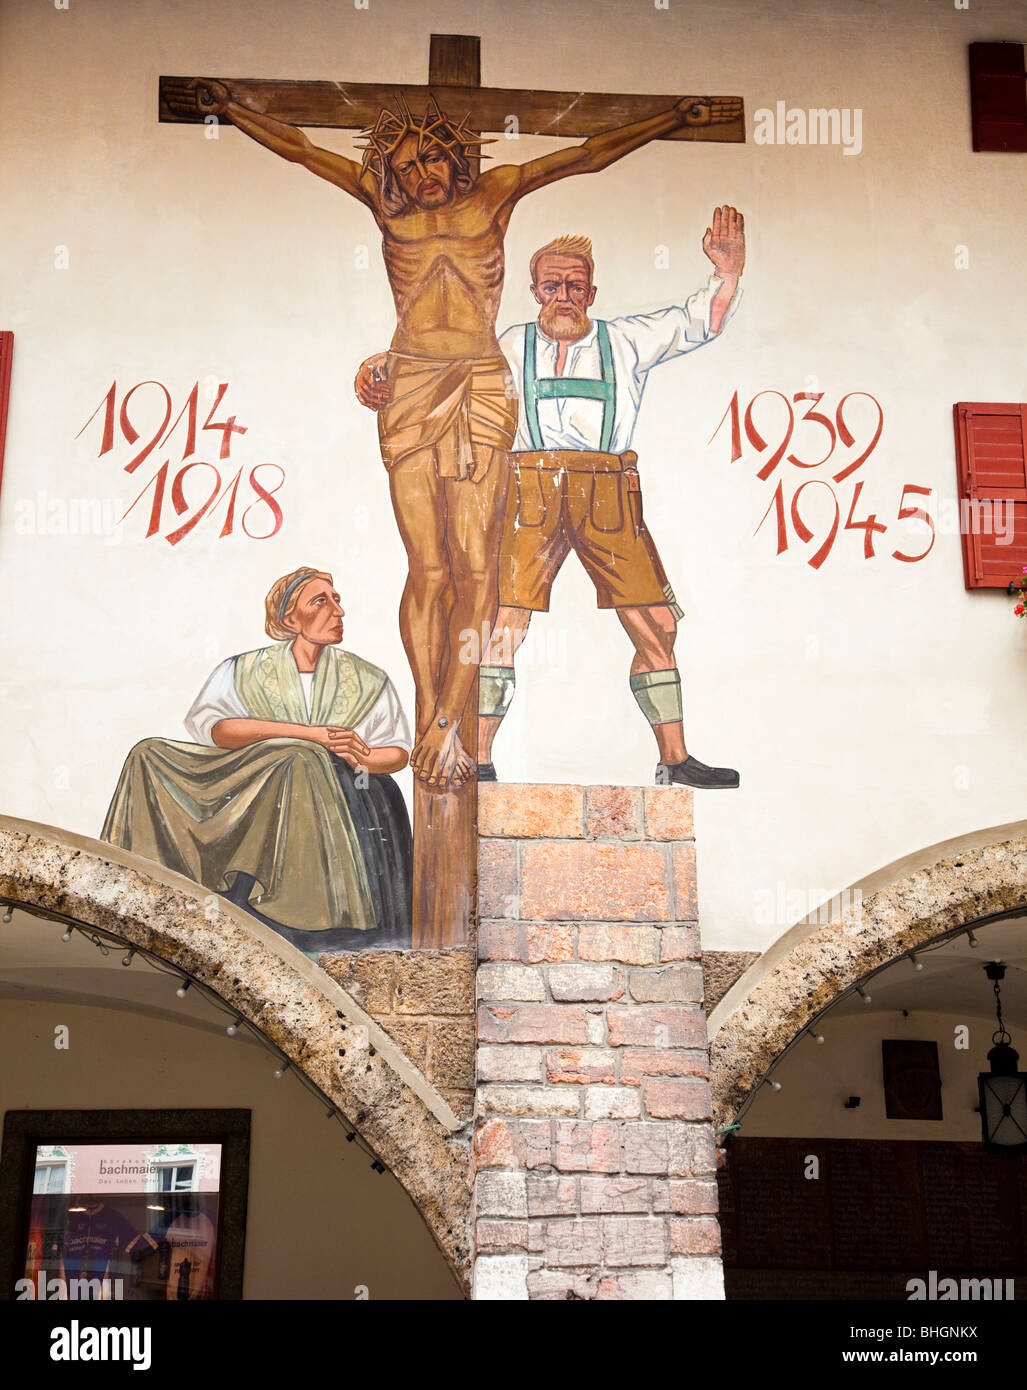 Murals showing dates of two world wars on the Old Fortification building in Berchtesgaden, Bavaria, Germany, Europe - Stock Image